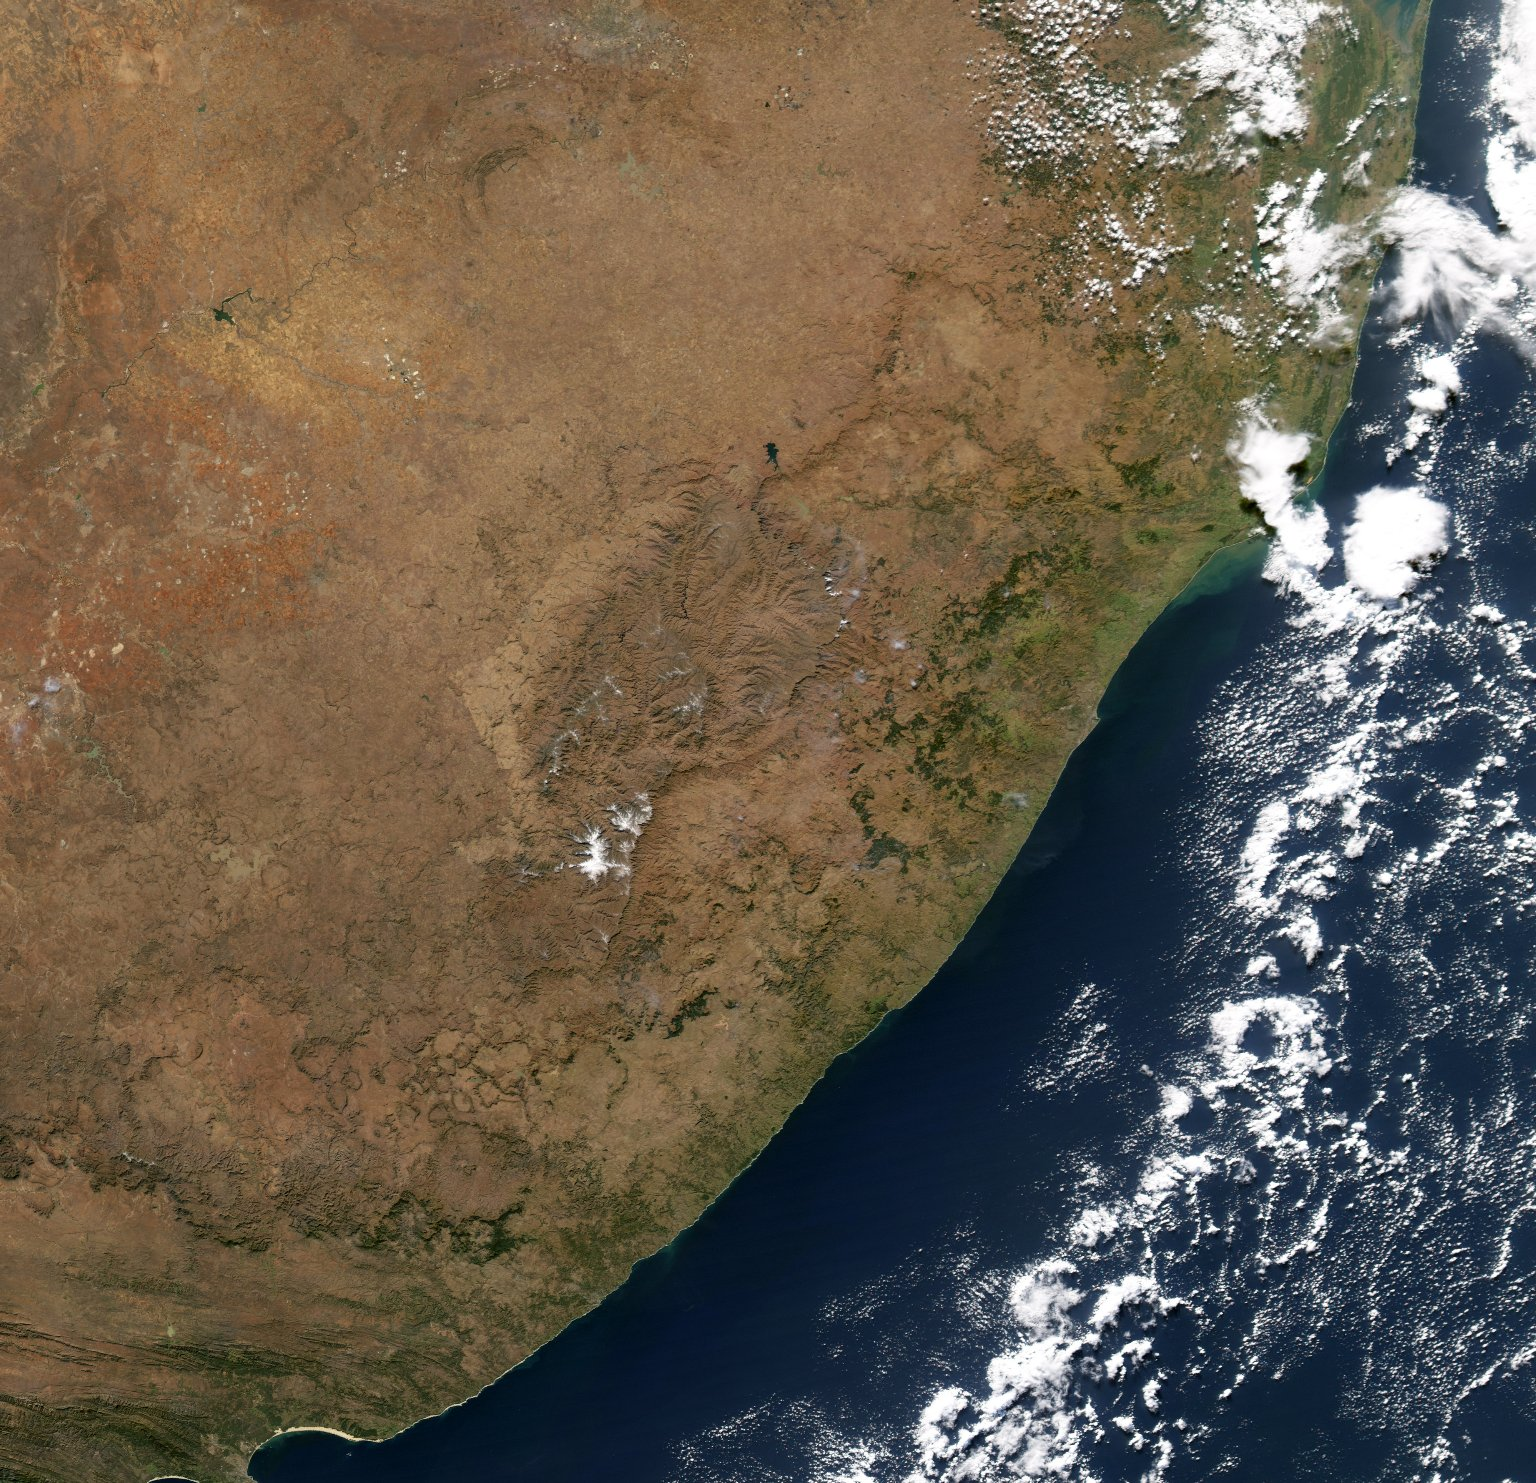 Snow in Southern Africa